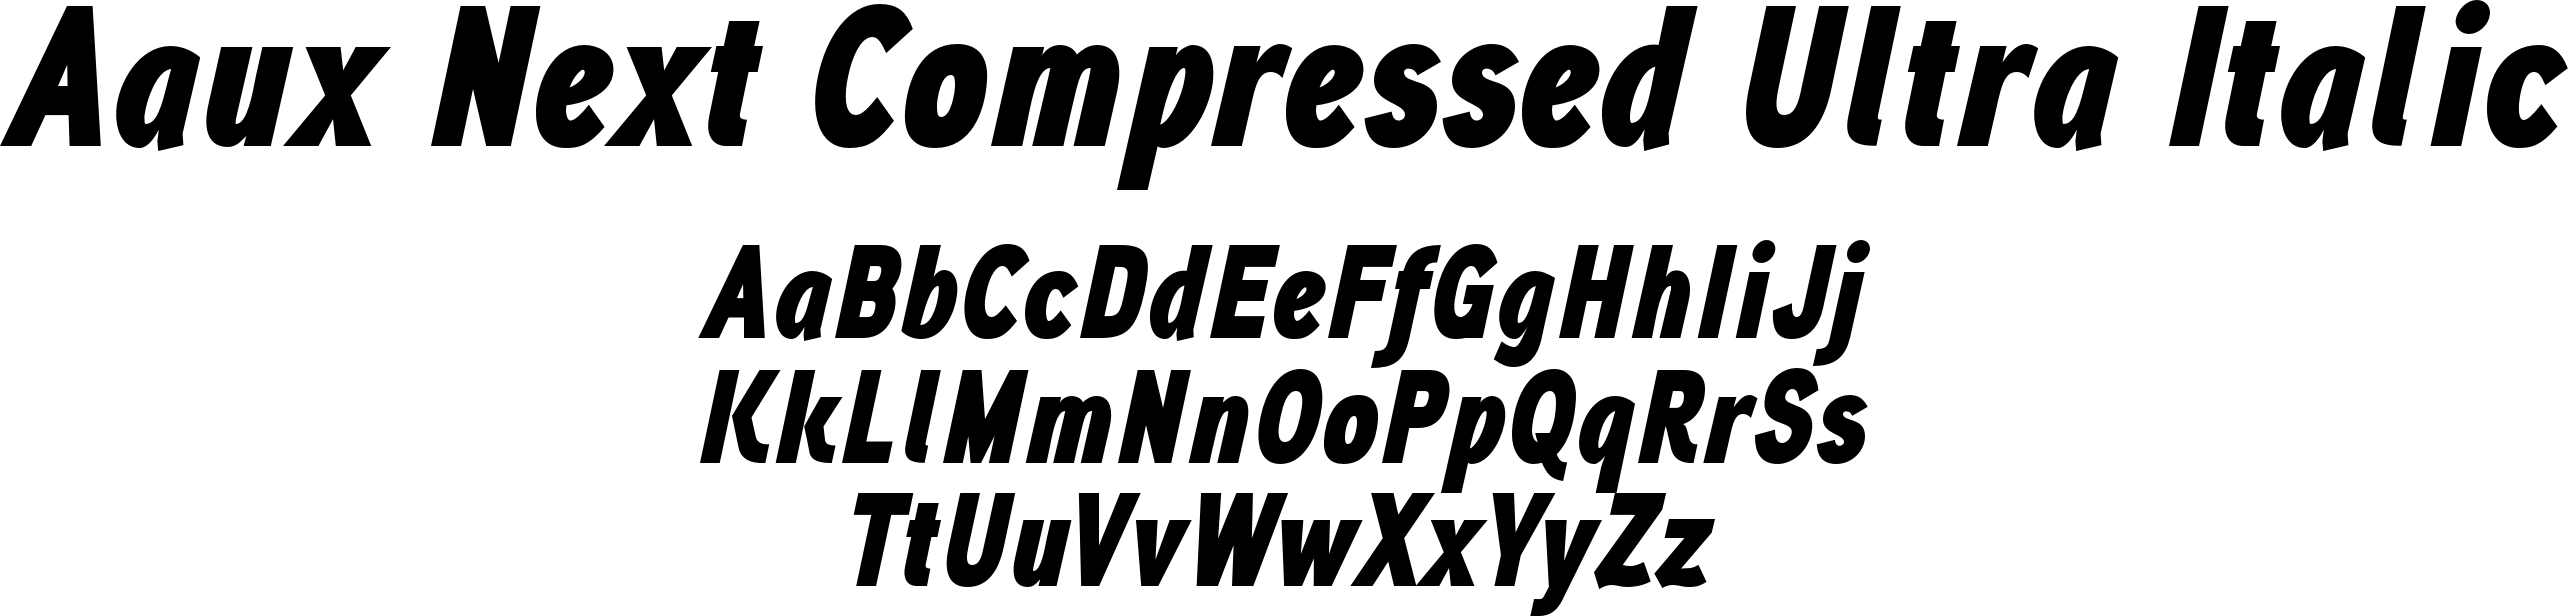 Aaux Next Compressed Ultra Italic